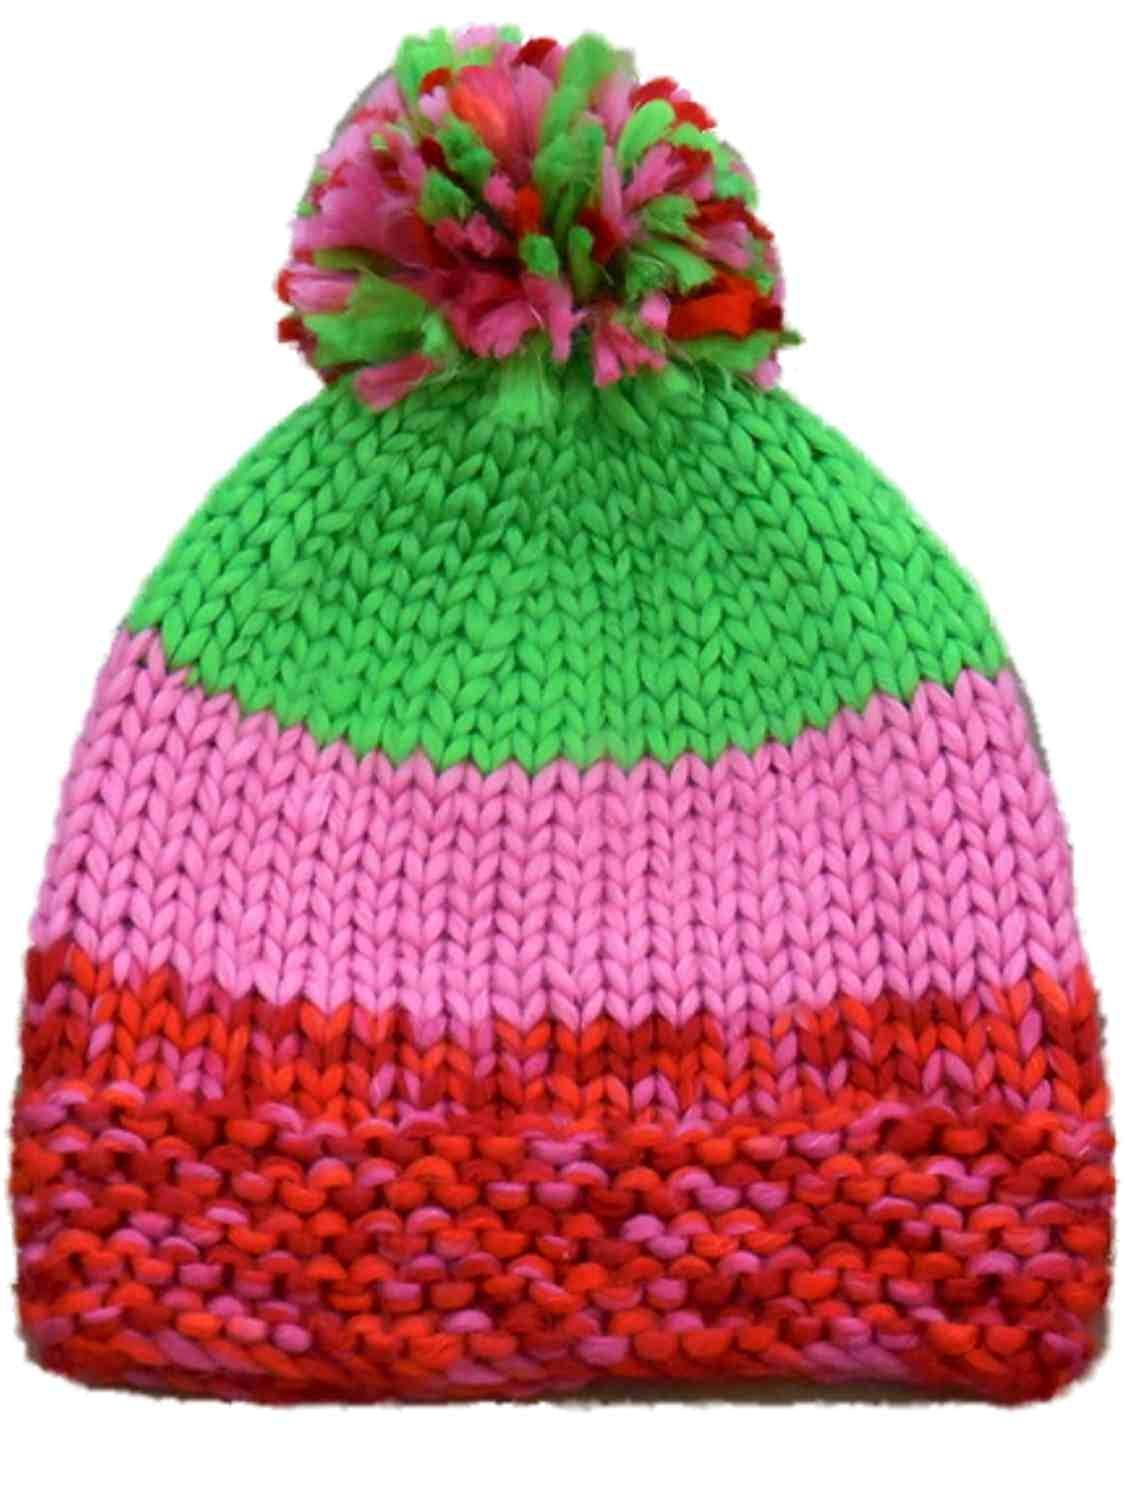 bc4733587fa31 Get Quotations · Urbanology Womens Pink And Green Striped Knit Beanie  Stocking Cap Hat